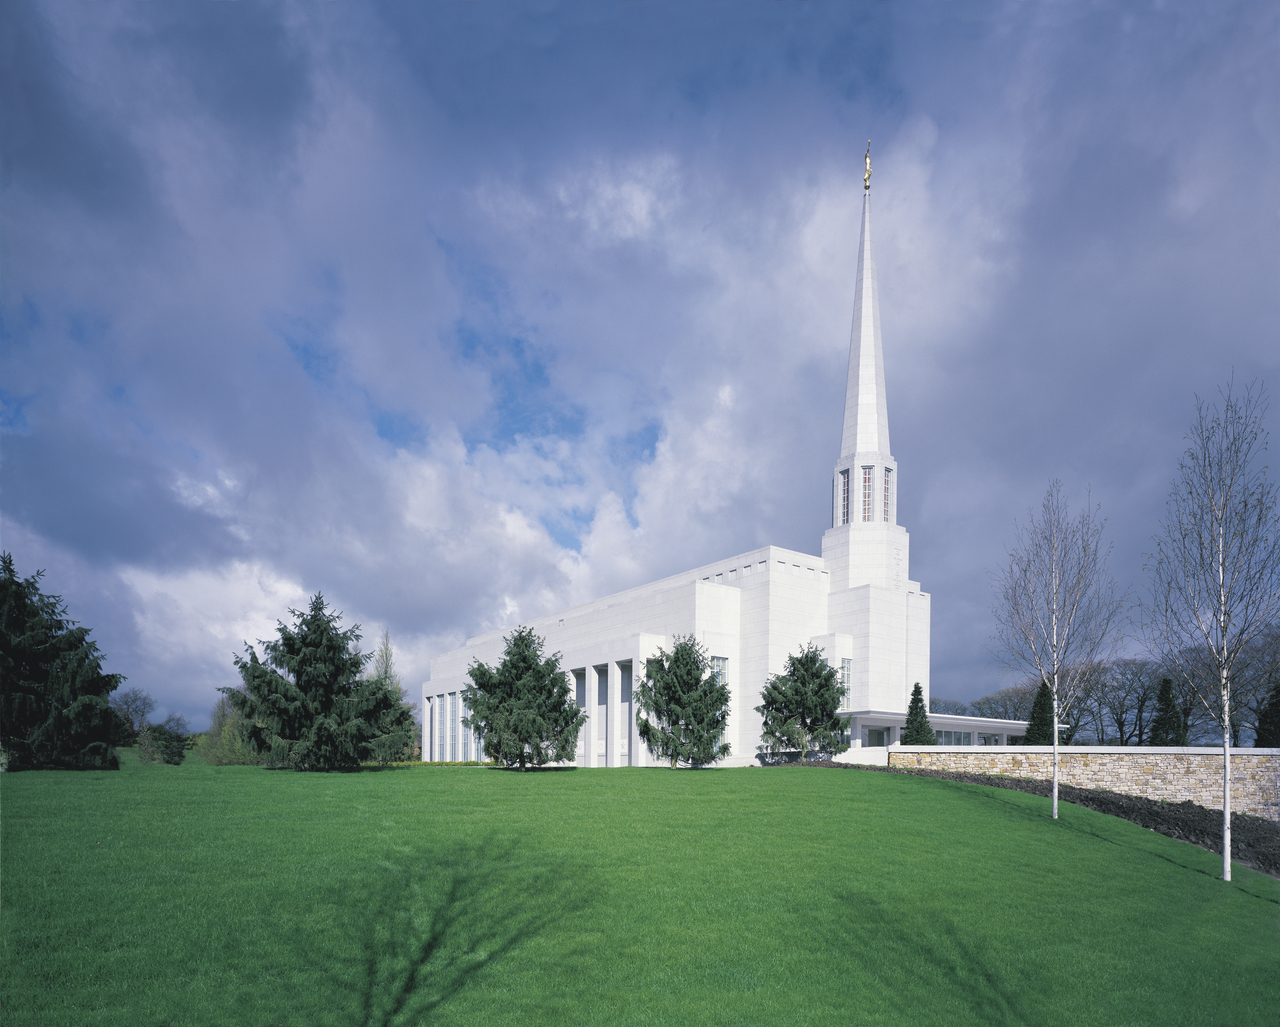 A view of the Preston England Temple from across its large green lawn on a partly cloudy day.